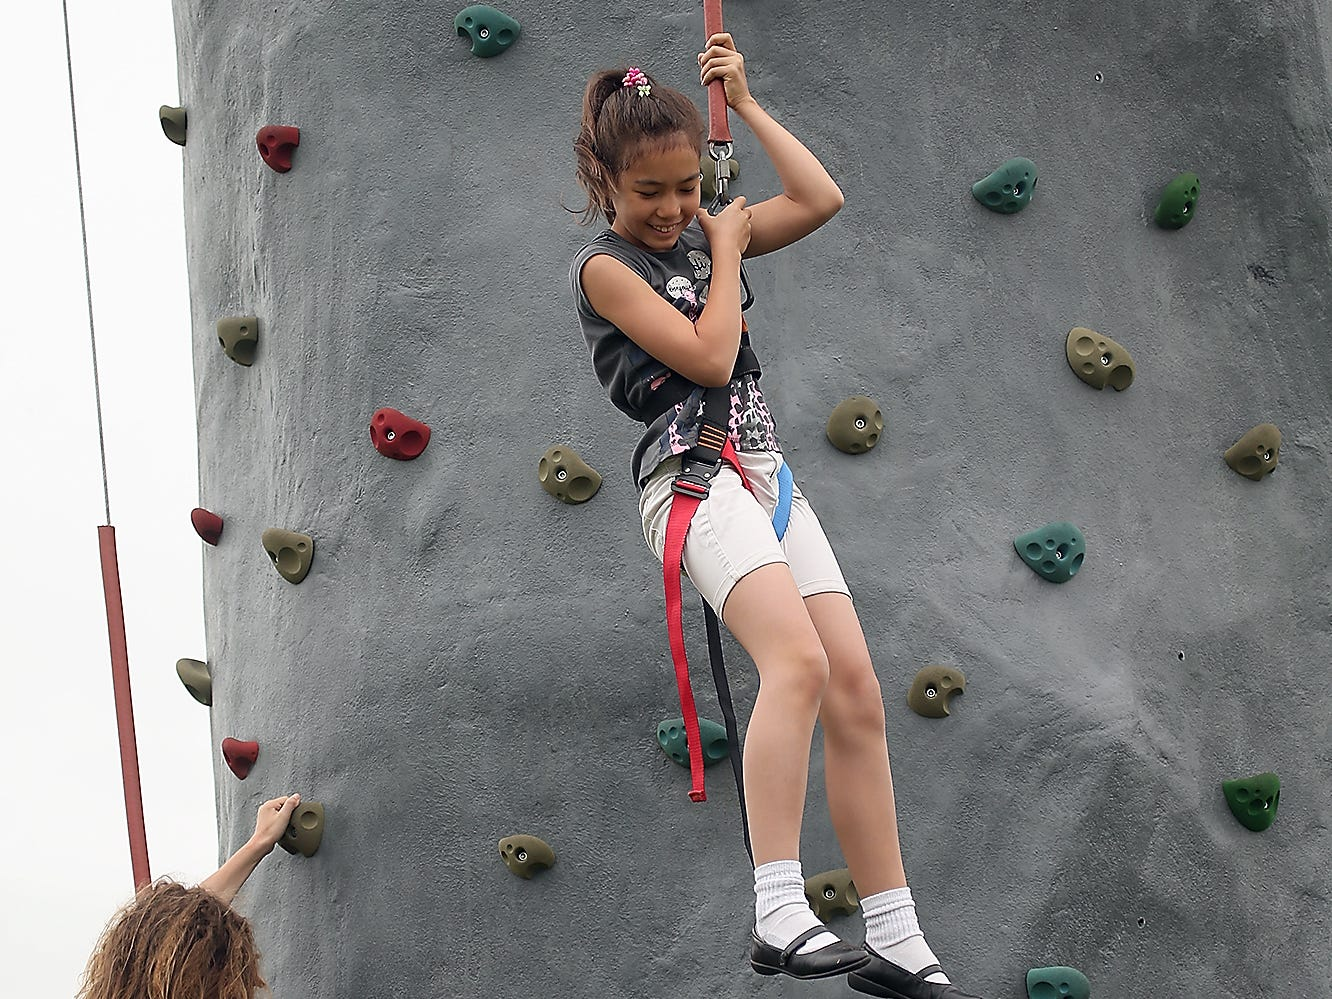 """After her climb to the top of the National Guard climbing wall, Natalie Knez, 10, smiles as she repels to the ground at Bremerton's Kiwanis Park on Wednesday, July 18, 2018. The wall will be at Kiwanis Park Friday, July 20 Tuesday, July 24 and Wednesday, July 25 as part of Bremerton Parks and Recreation's """"Fun at the Playgrounds"""" program."""